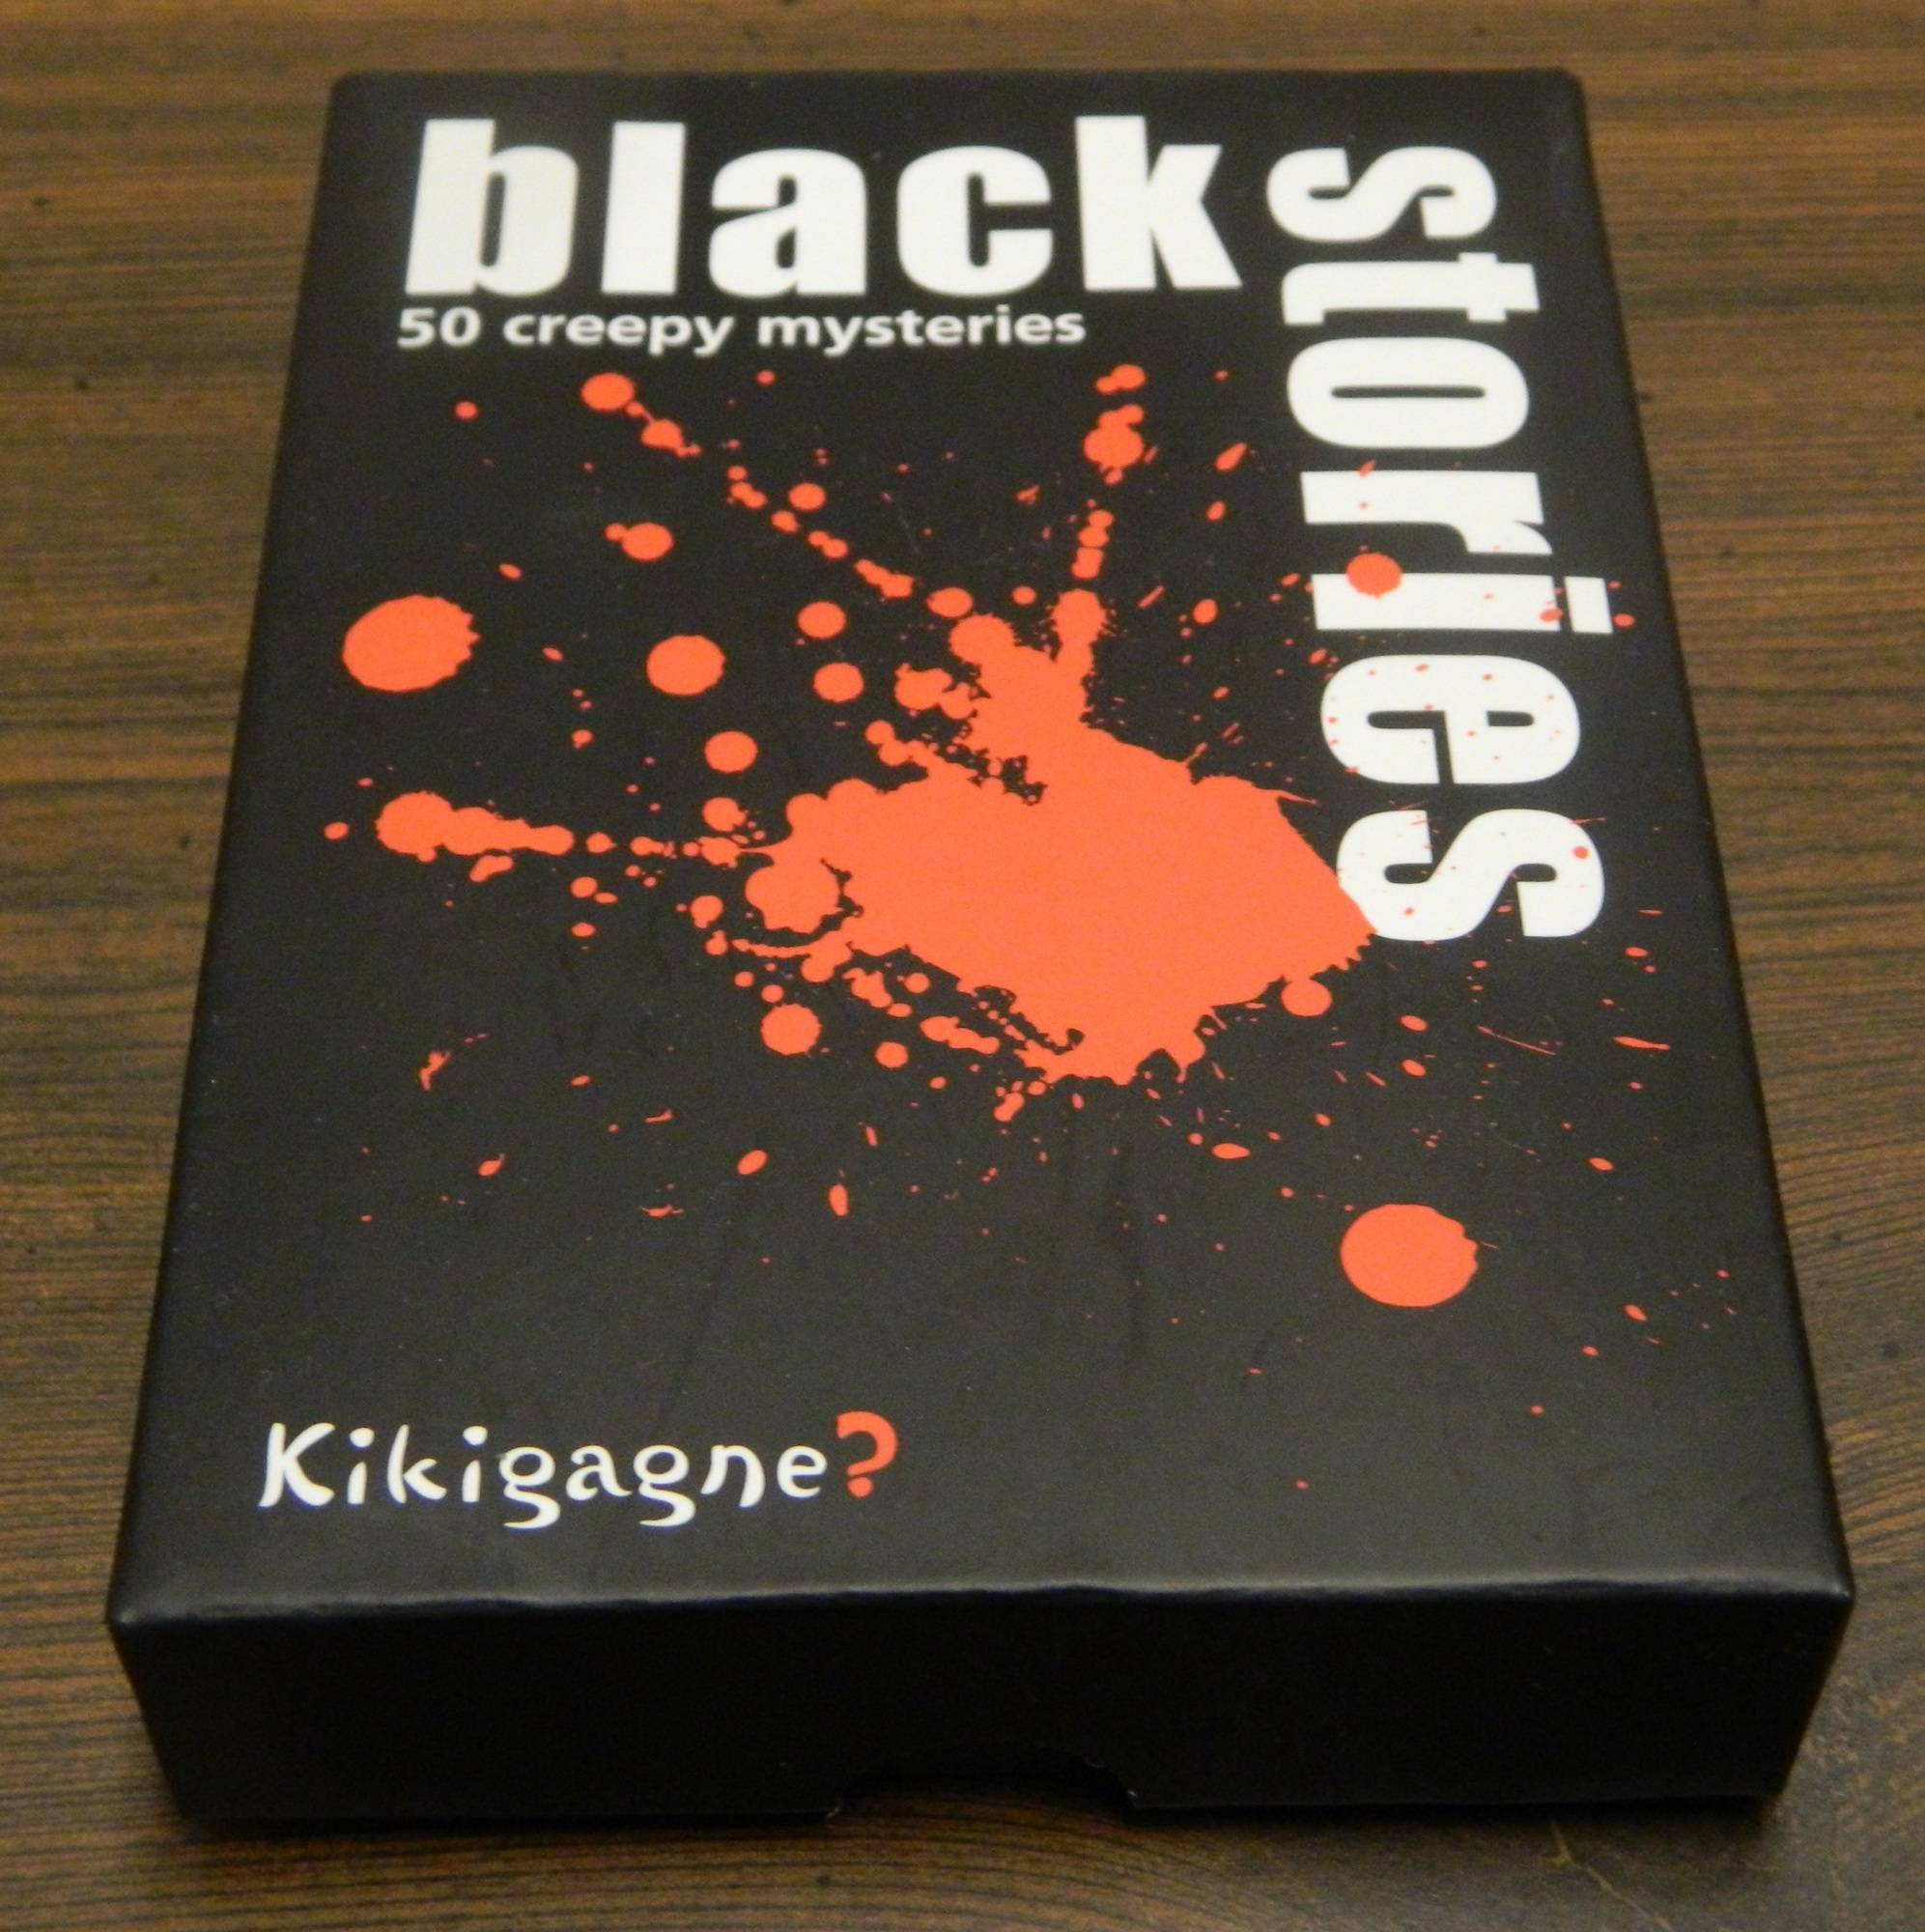 Box for Black Stories